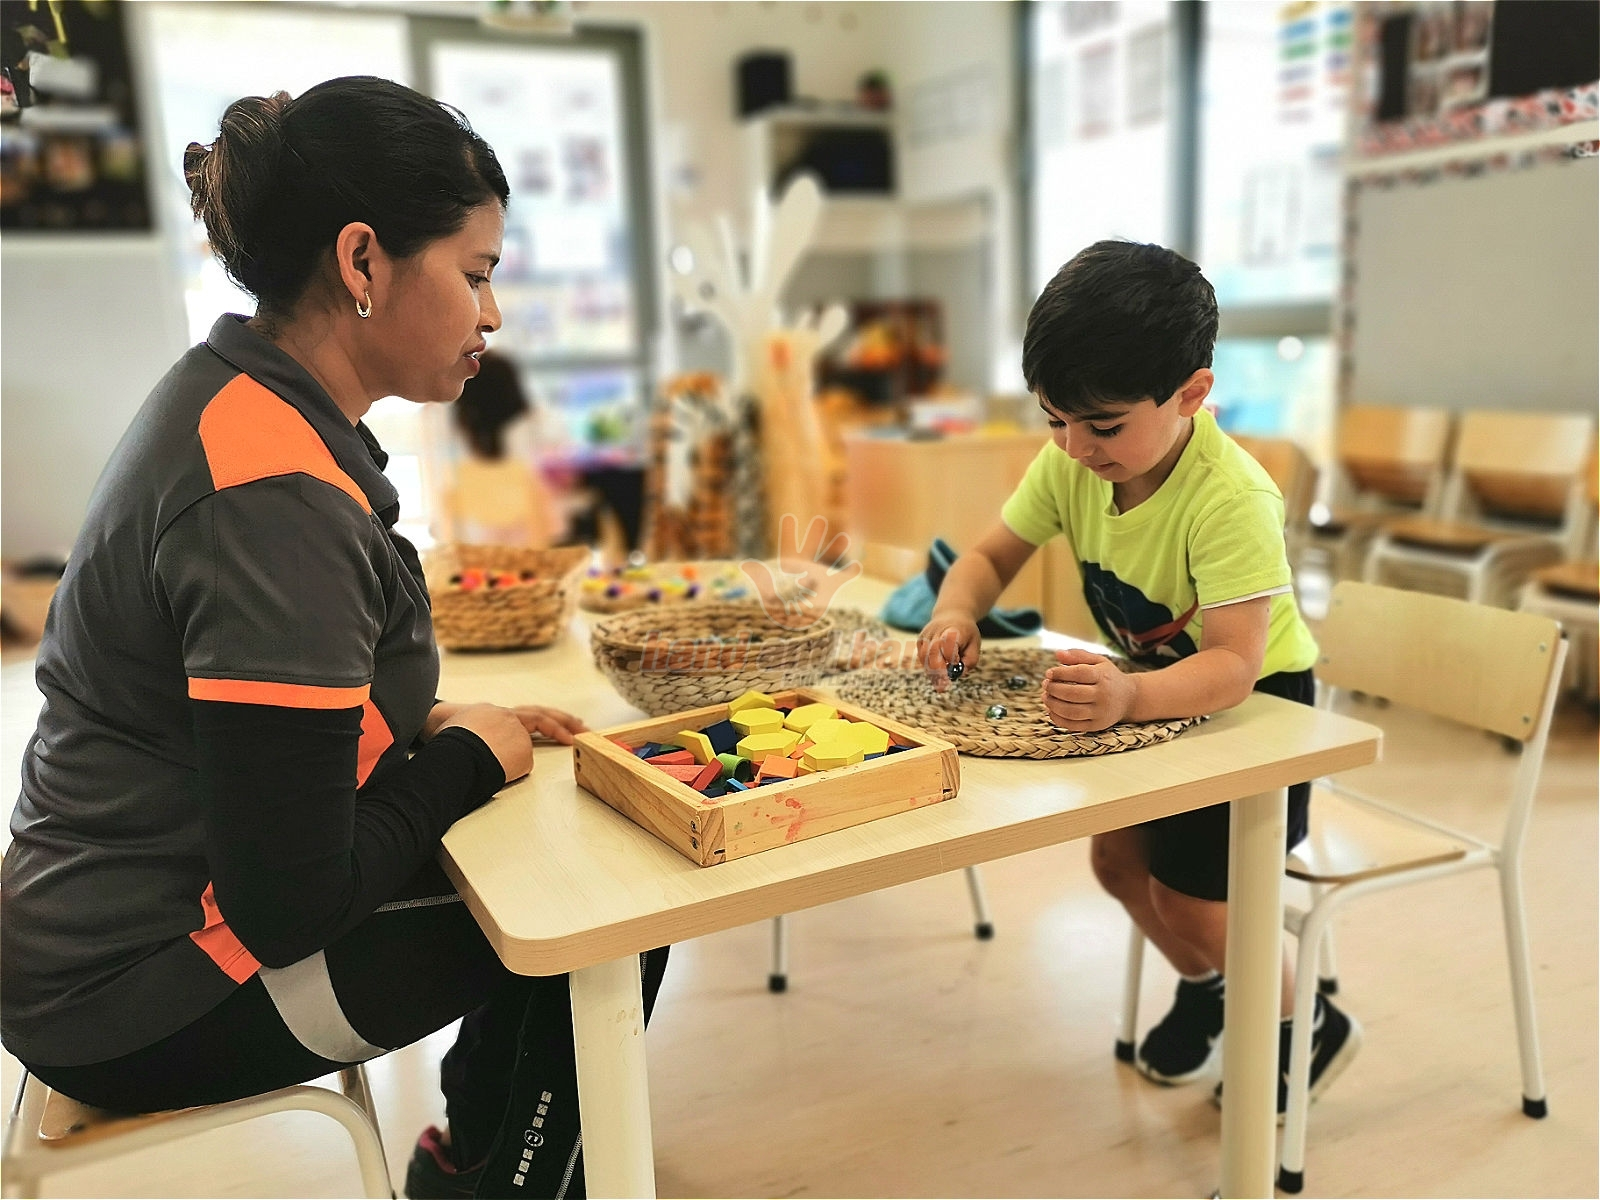 handandhand-flat-bush-early-learning-centre-IMG_20191127_115011_web-20200205022020736-watermarked